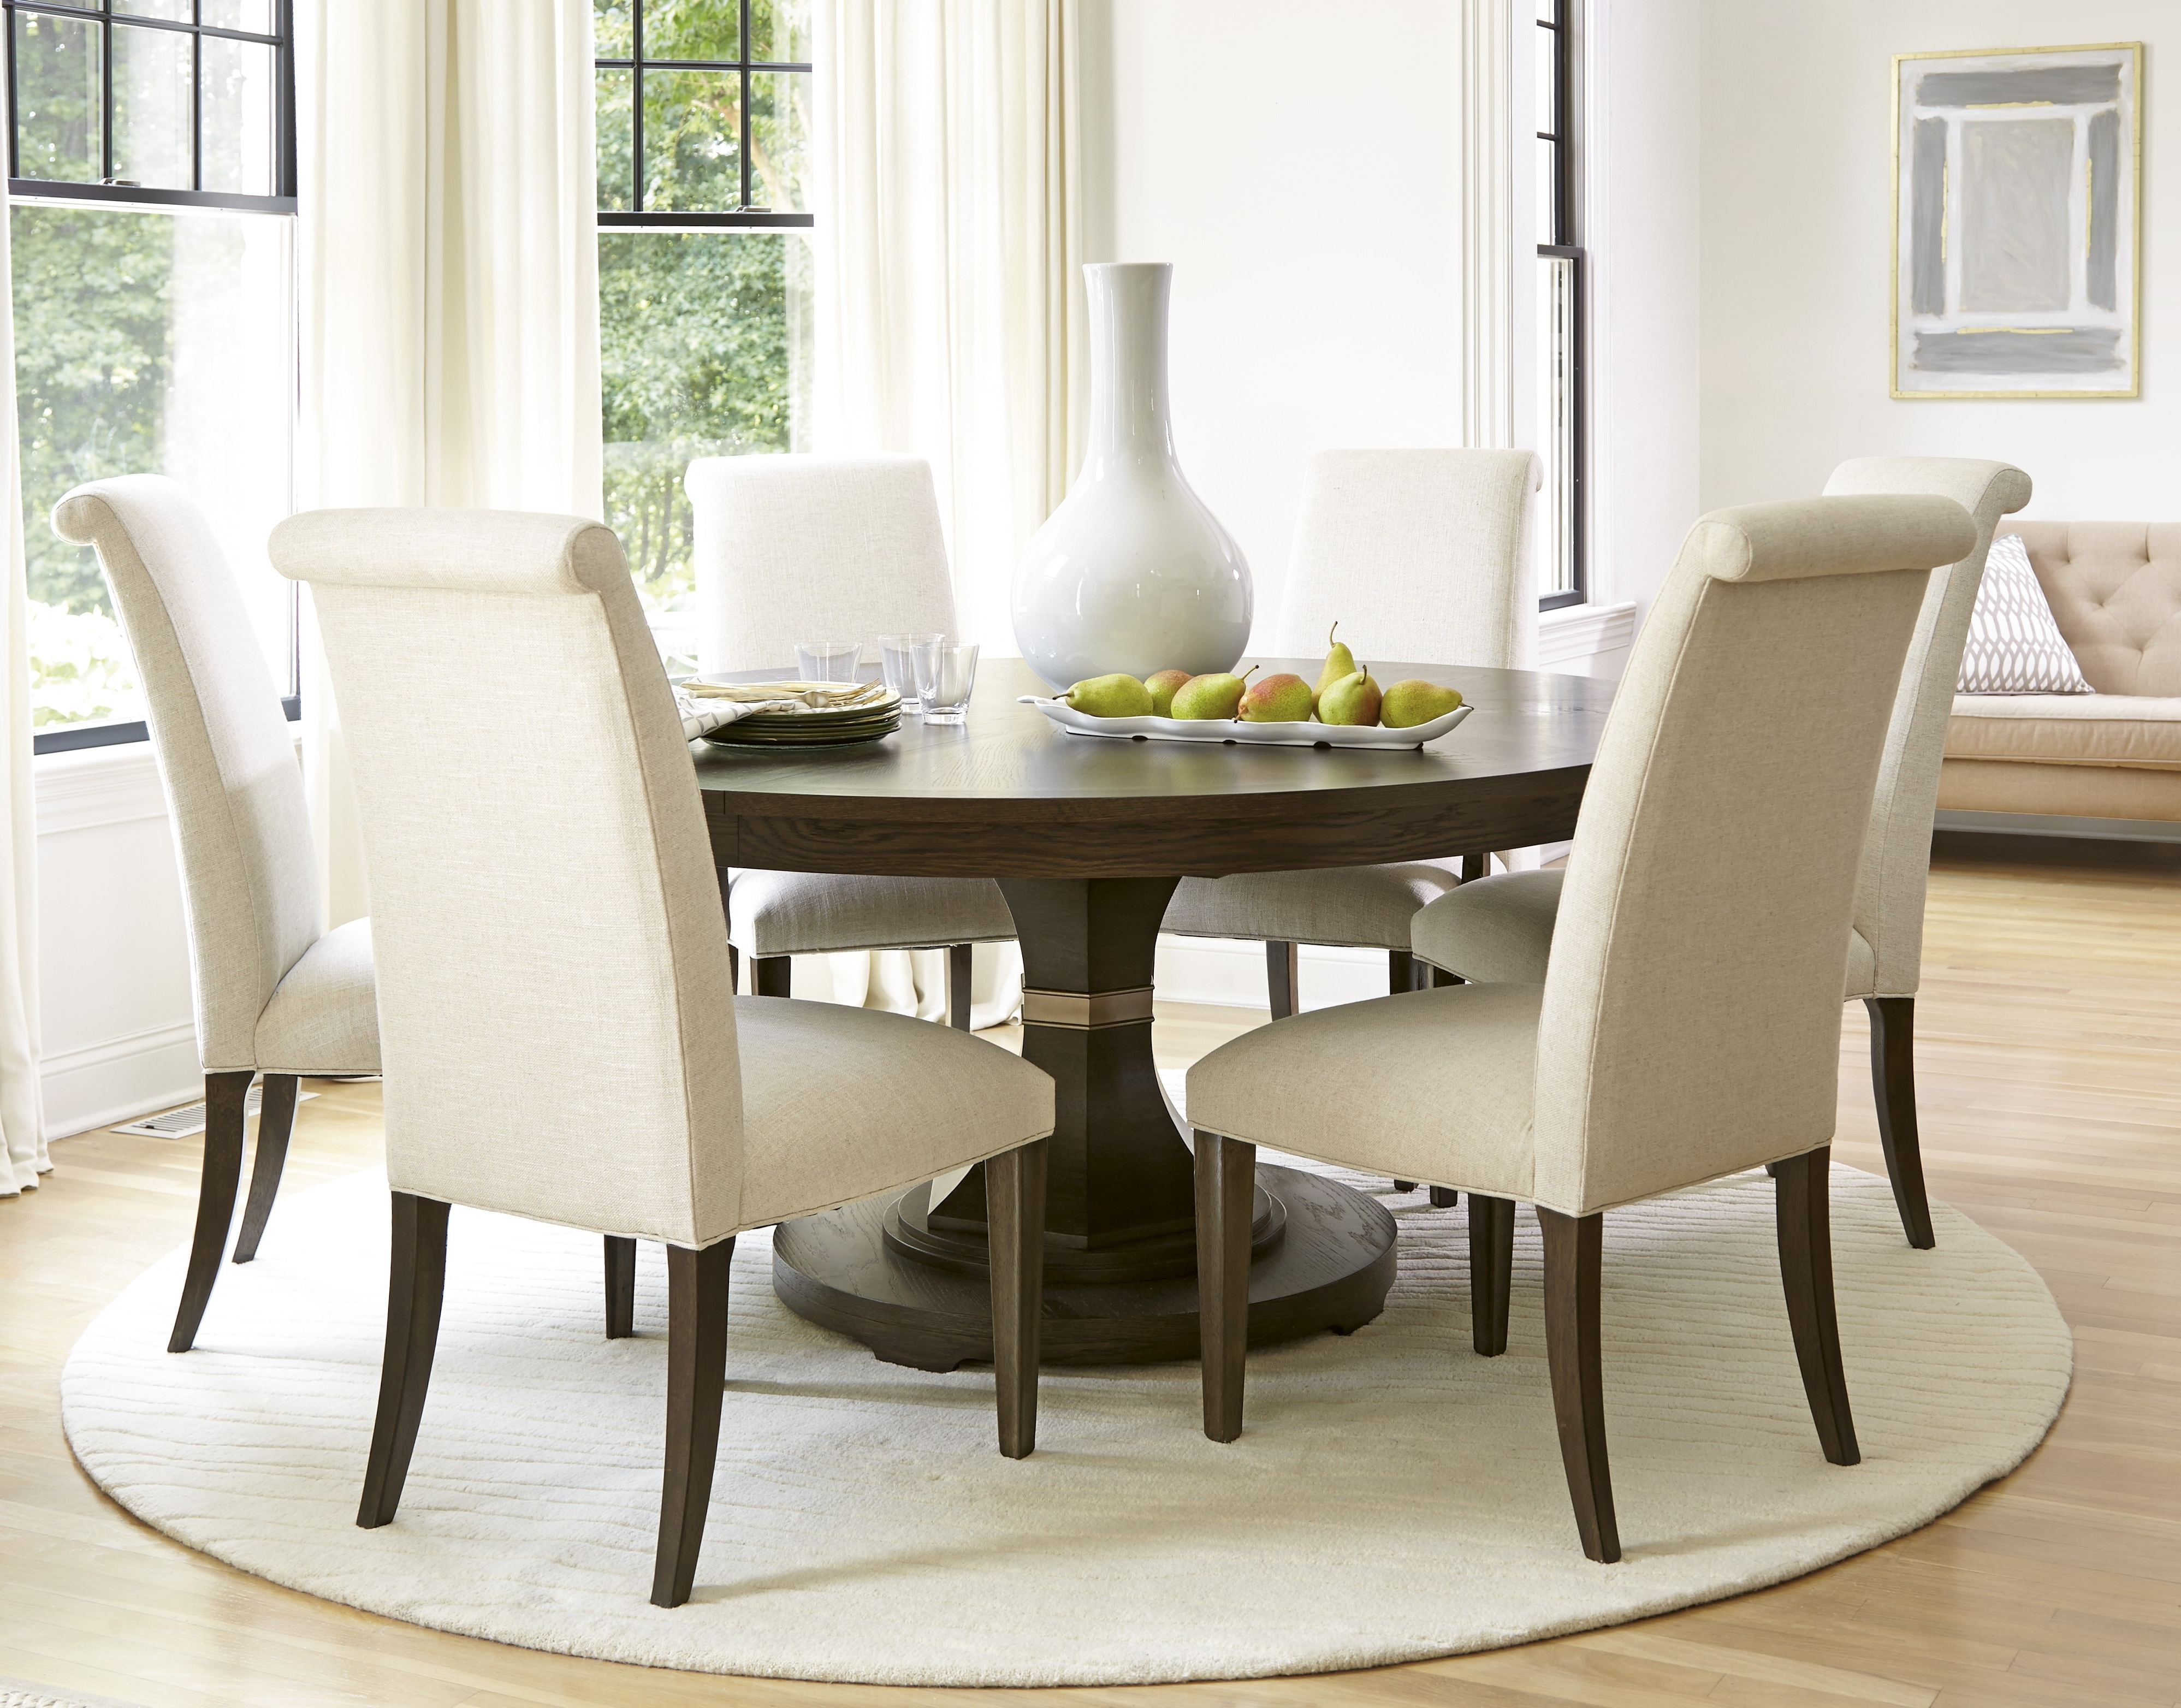 Popular Classy Circular Dining Room Tables 27 – Esescatrina In Circular Dining Tables For  (View 19 of 25)